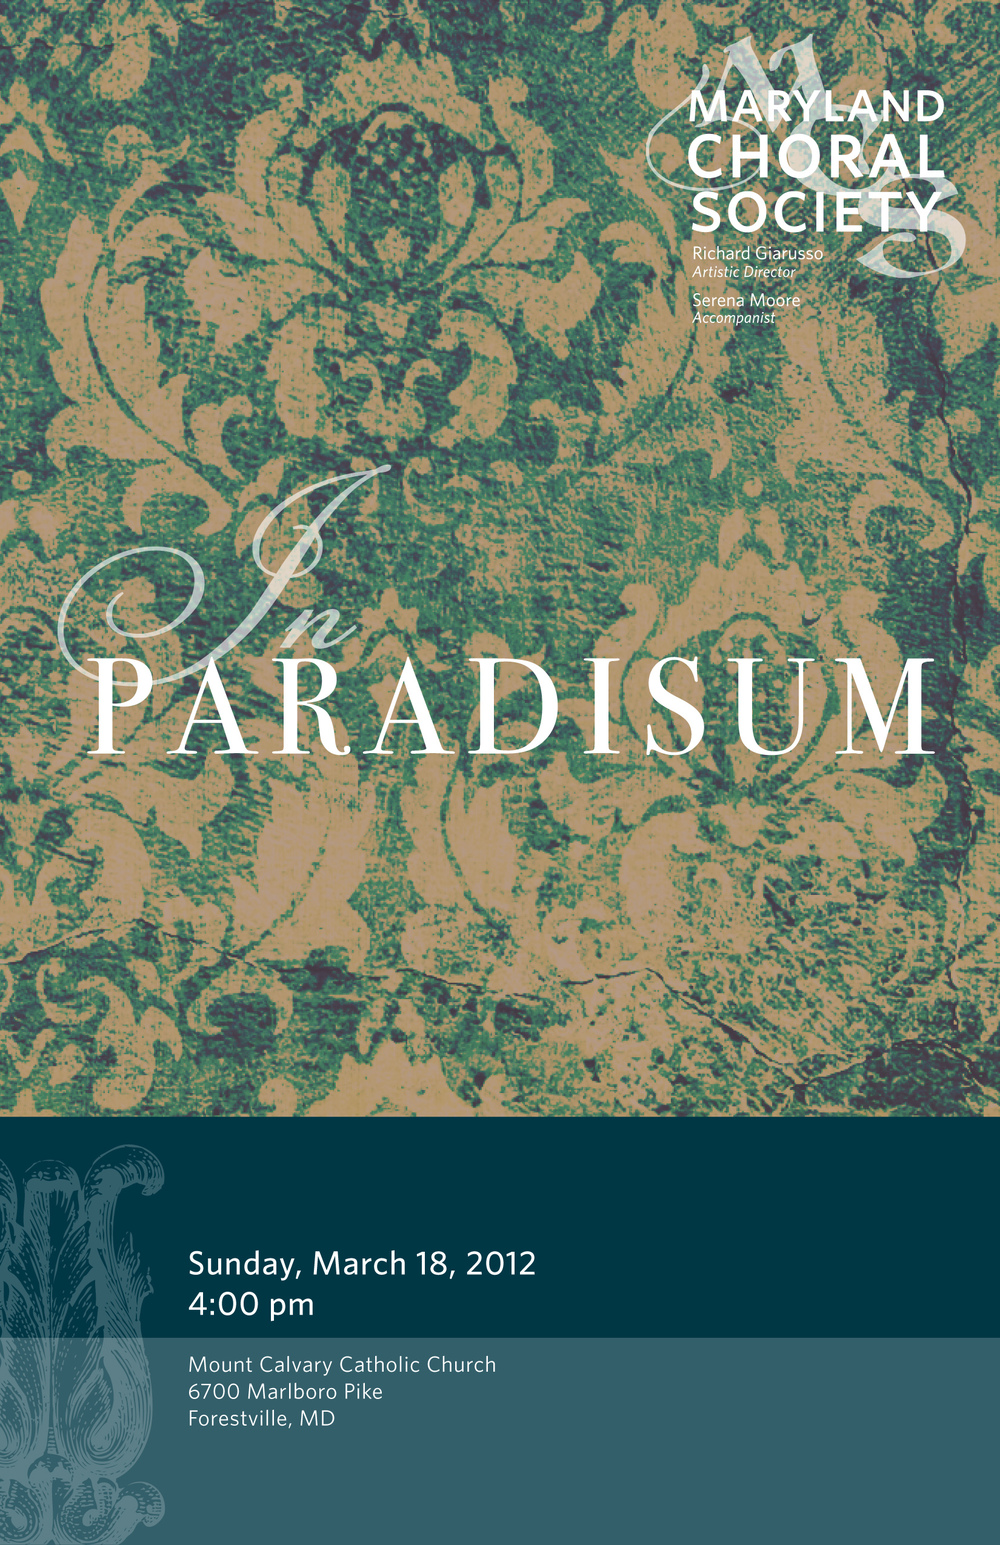 Paradisum Program Cover.jpg